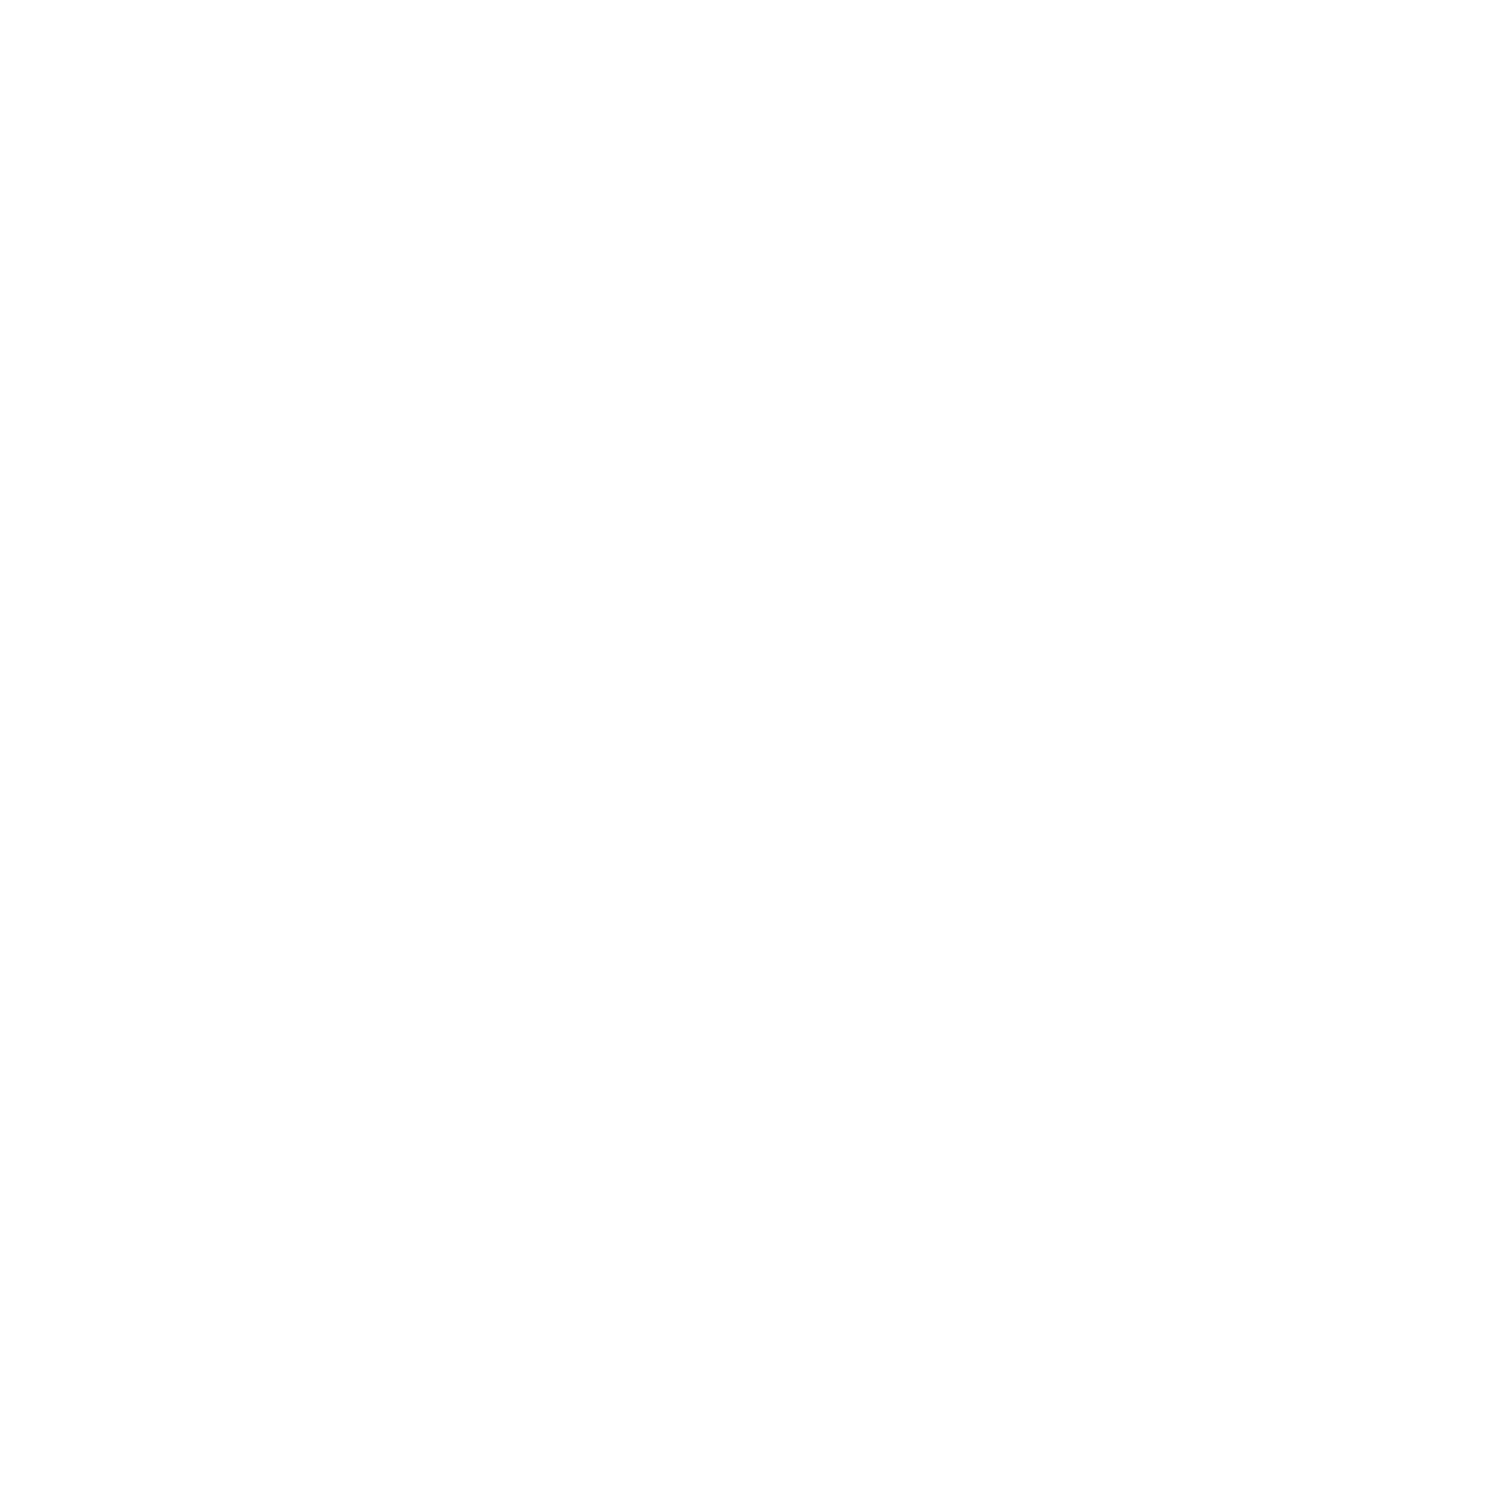 James Kelly Landscape